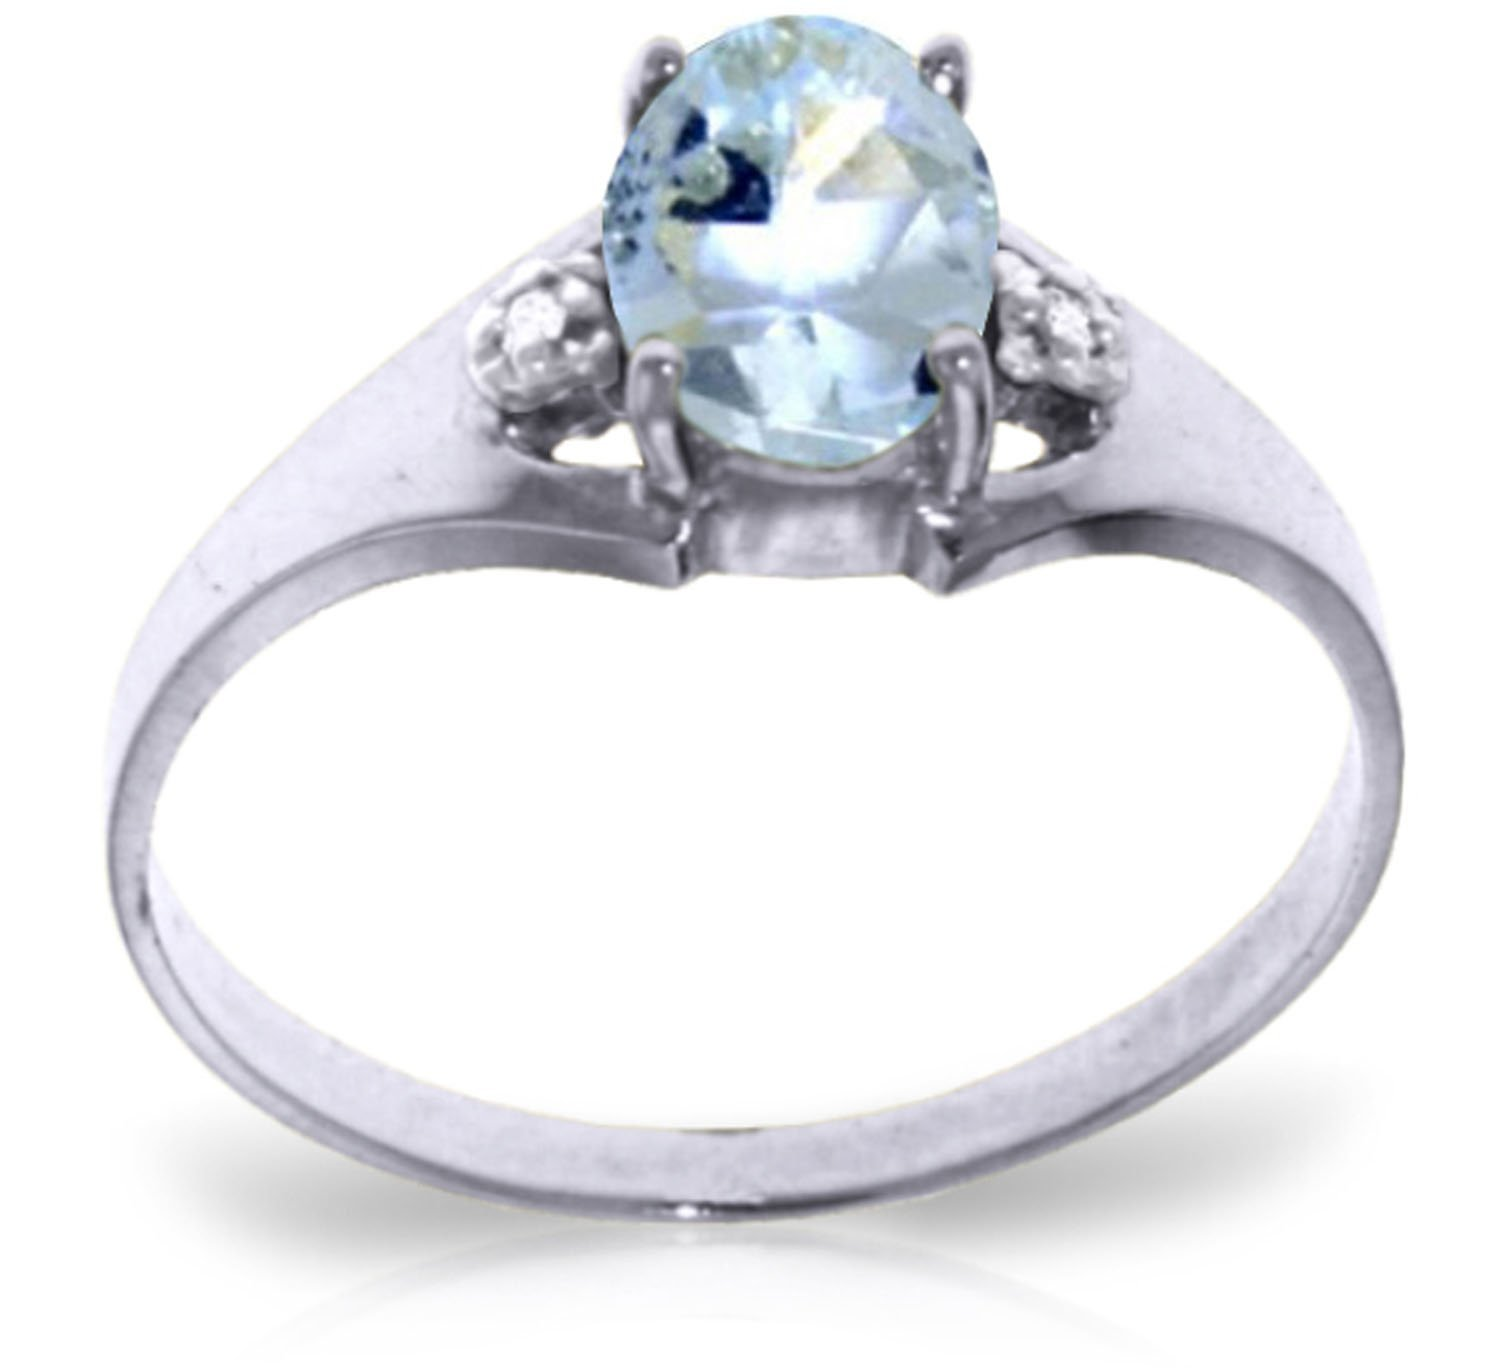 0.76 Carat 14k Solid White Gold Ring with Genuine Diamonds and Natural Oval-shaped Aquamarine - Size 8